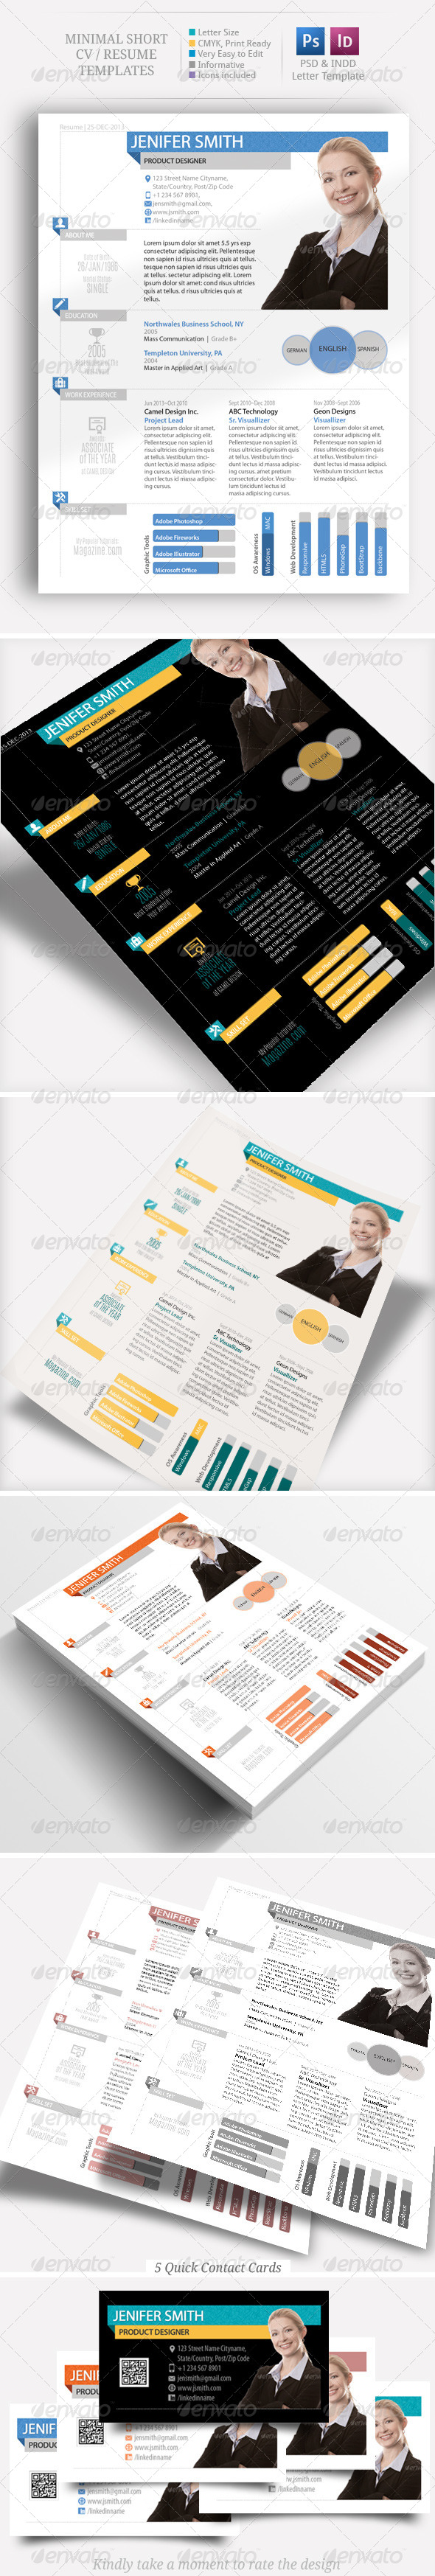 GraphicRiver Minimal Short CV Resume Set 6408660